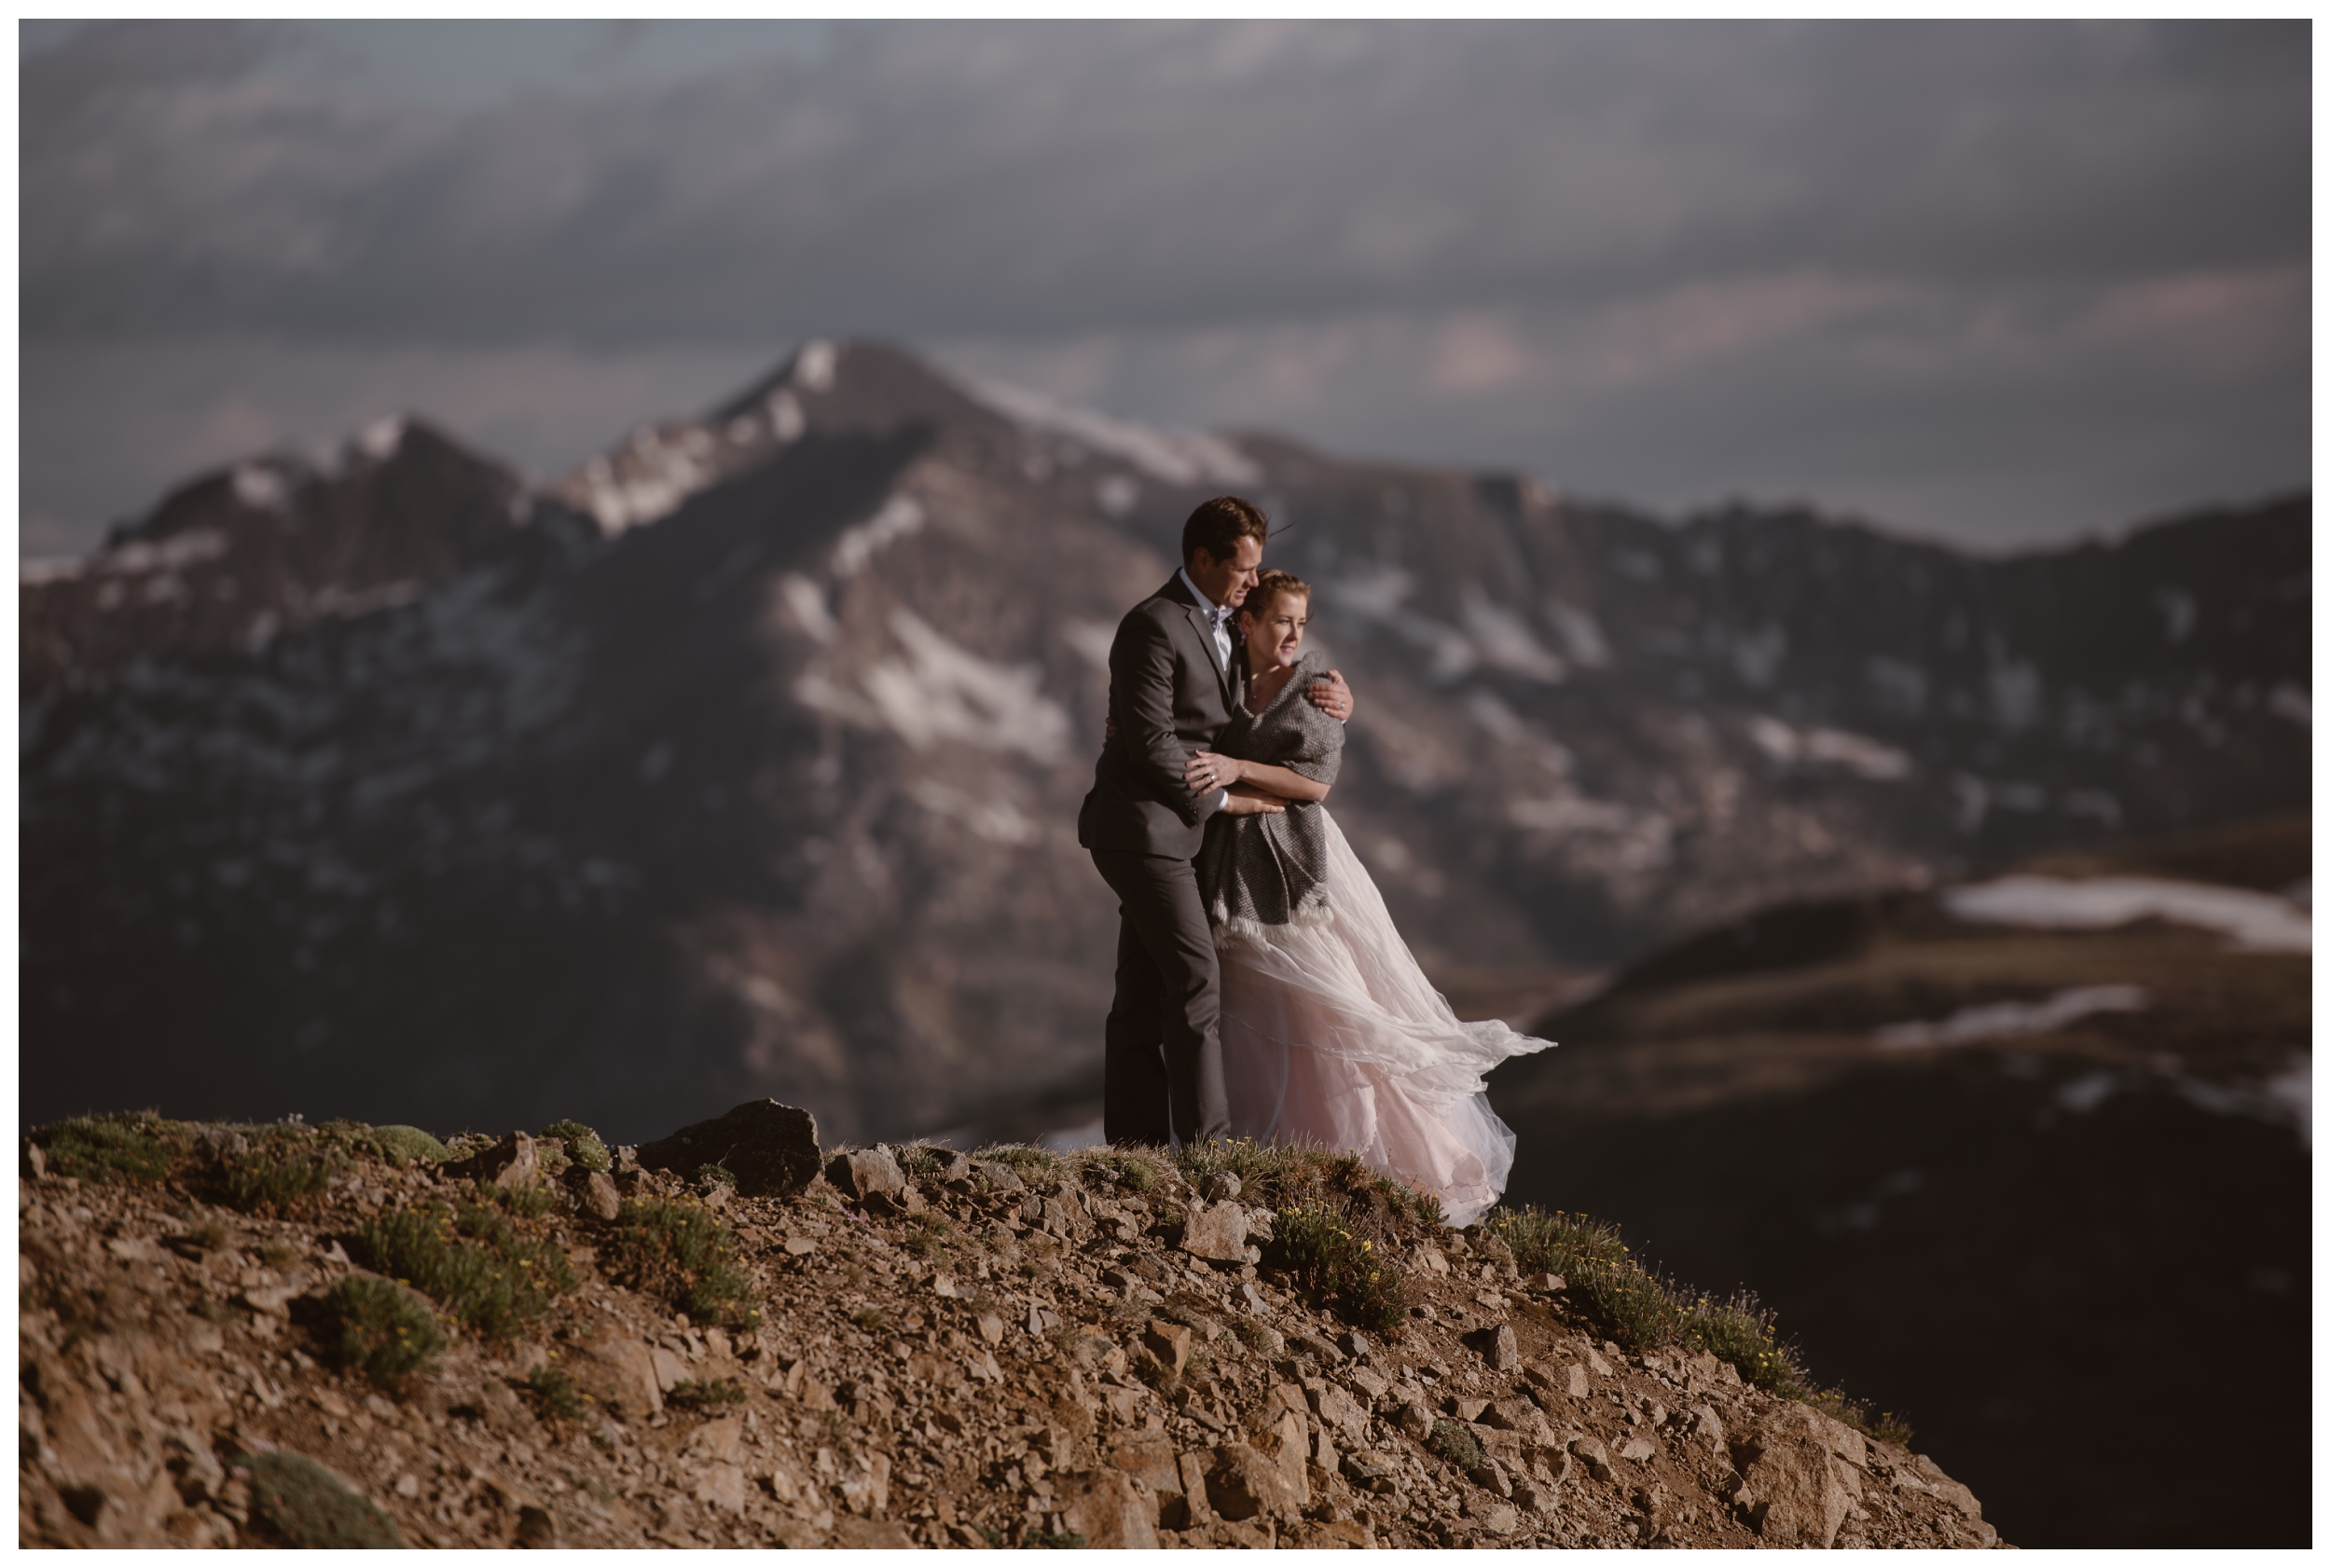 Marcela and Vasily embrace at the top of Independence Pass as the wind blows her blush colored wedding dress following their self solemnizing elopement ceremony. Photo by Maddie Mae, Adventure Instead.